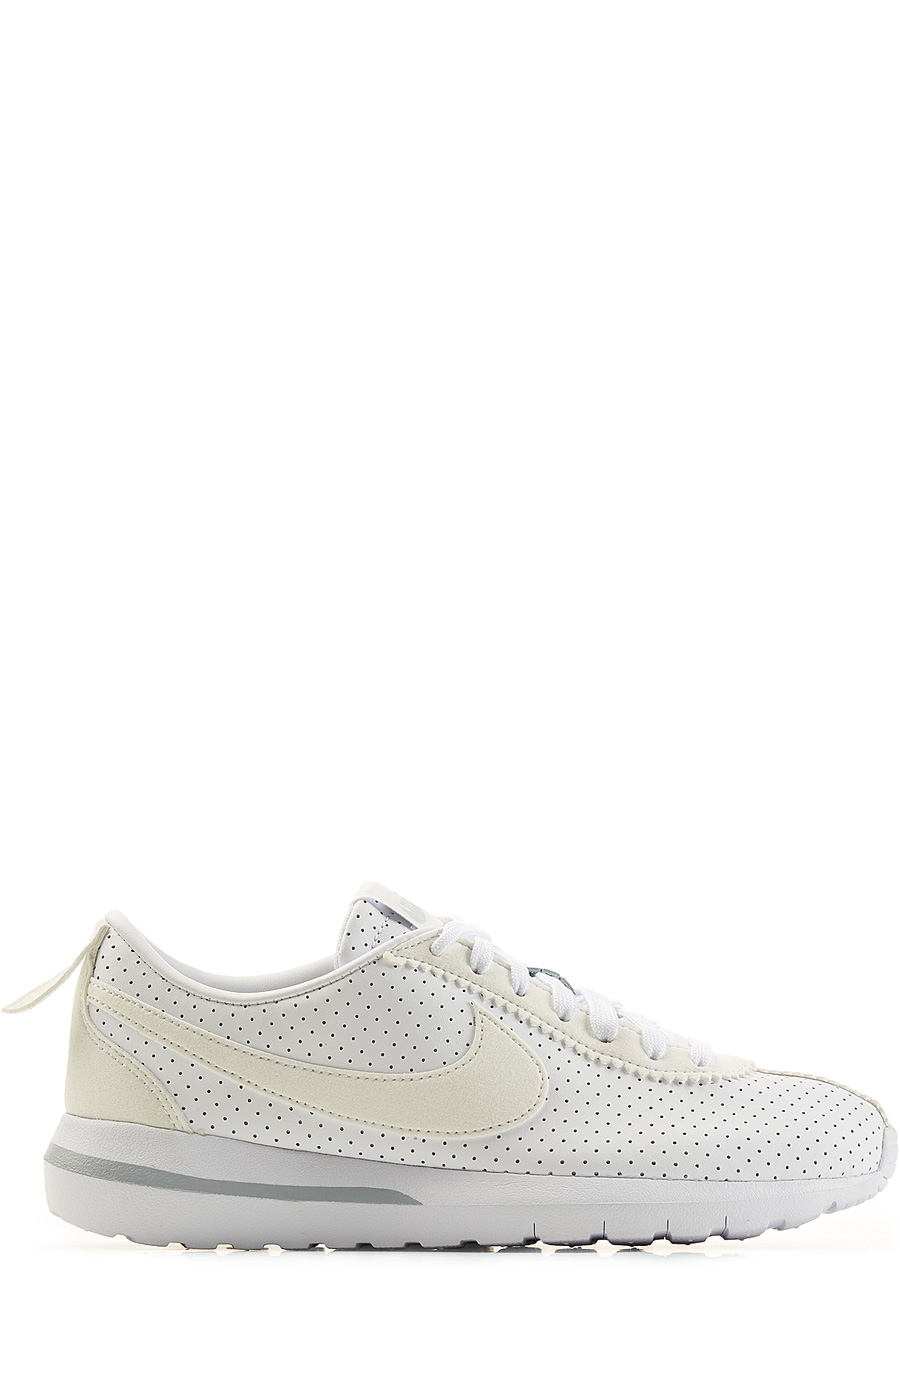 save off 840ac ddce9 Nike Roshe Cortez Leather Sneakers In White